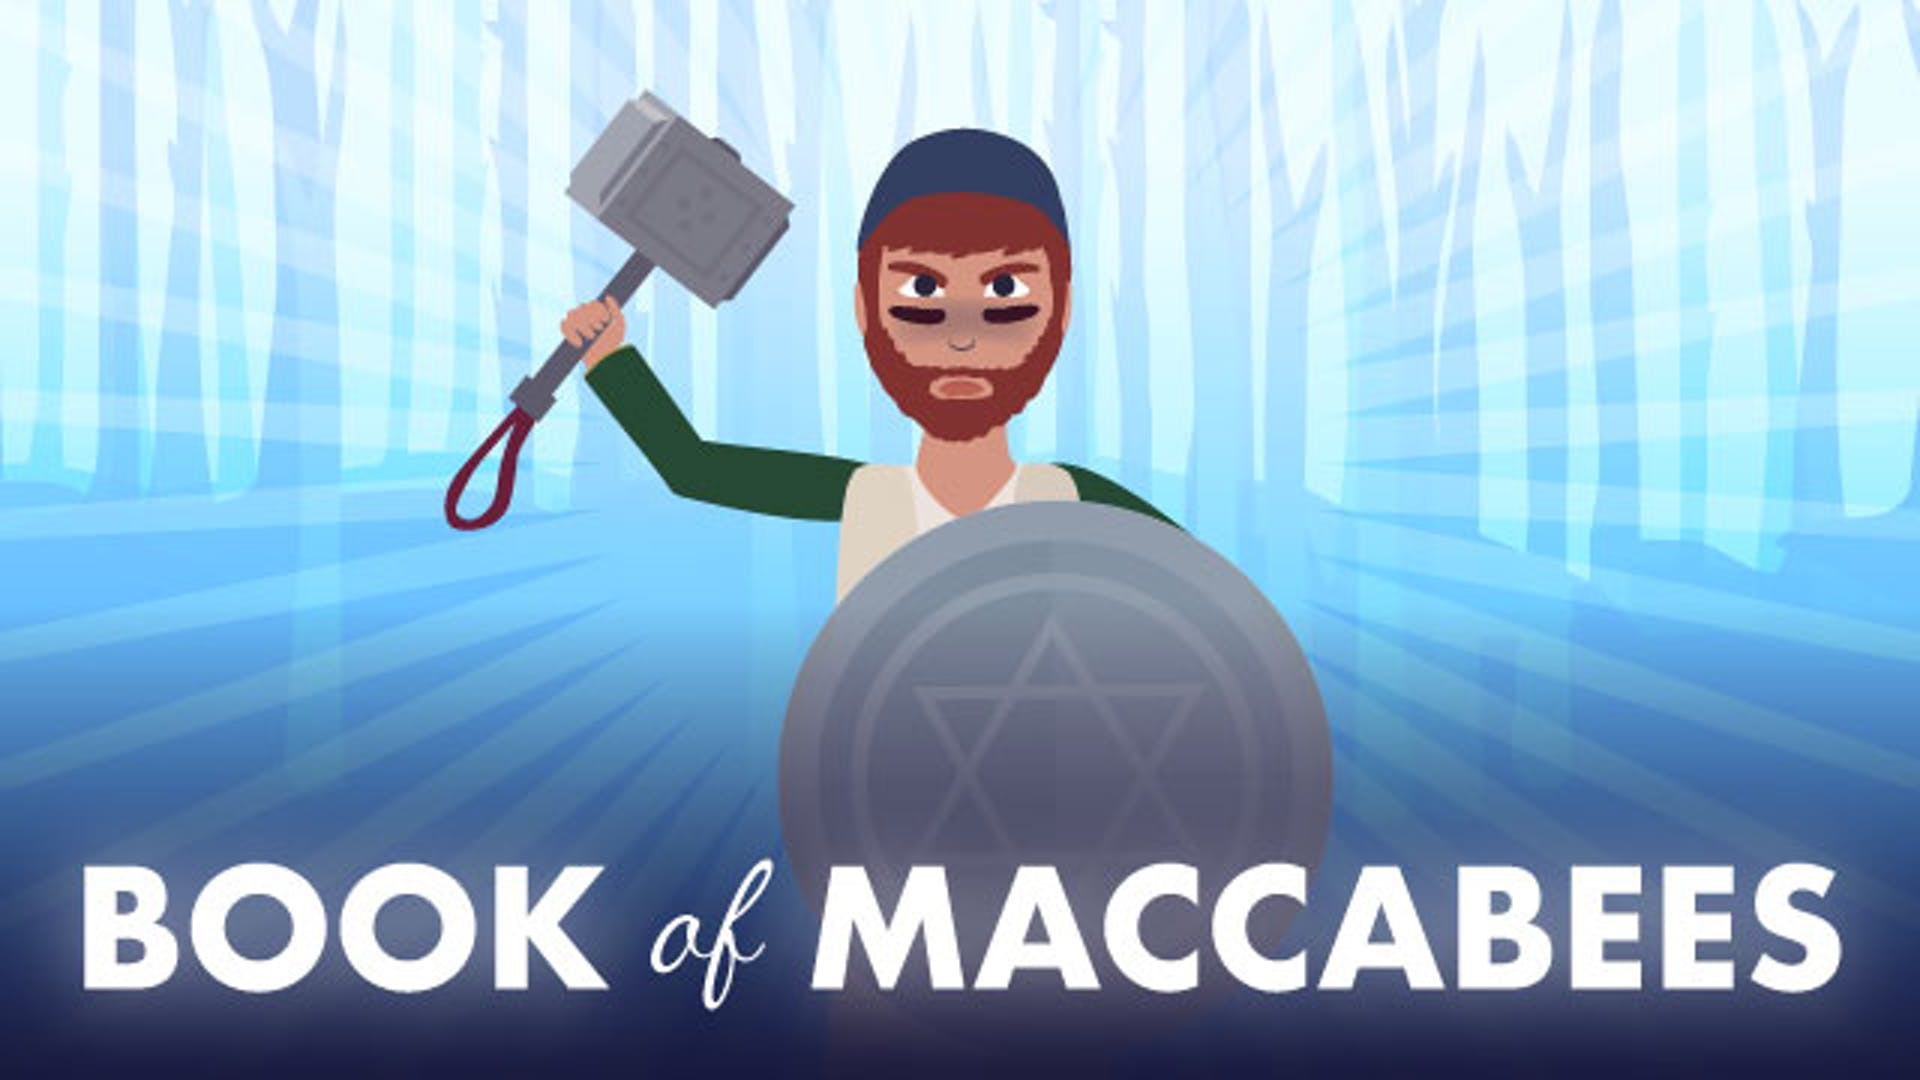 Hanukkah Maccabees story meaning